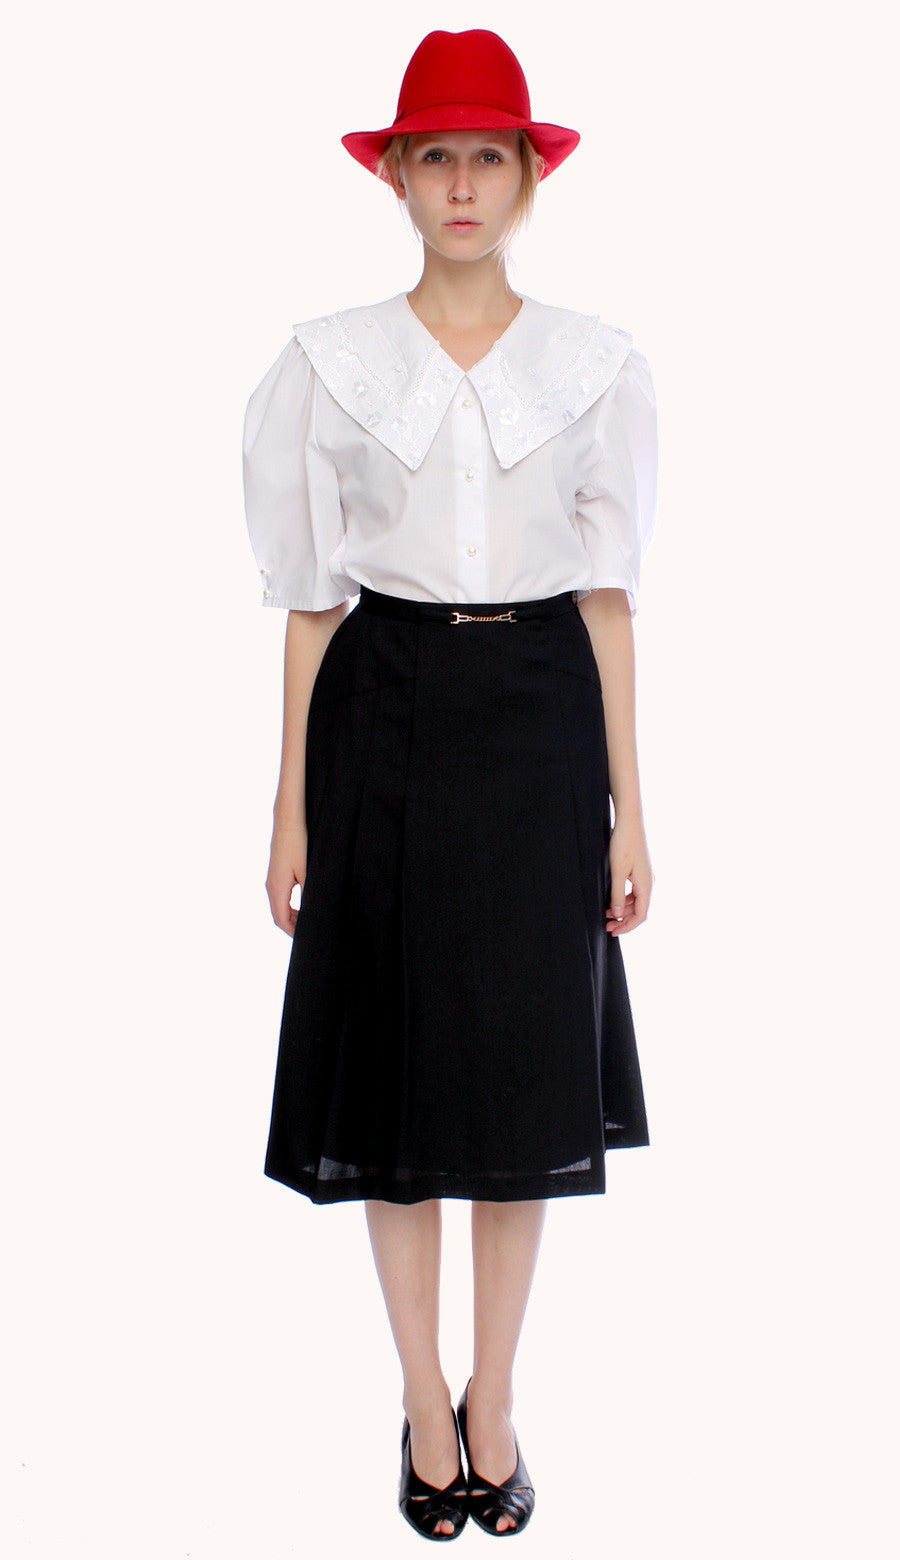 SAILOR BLOUSE